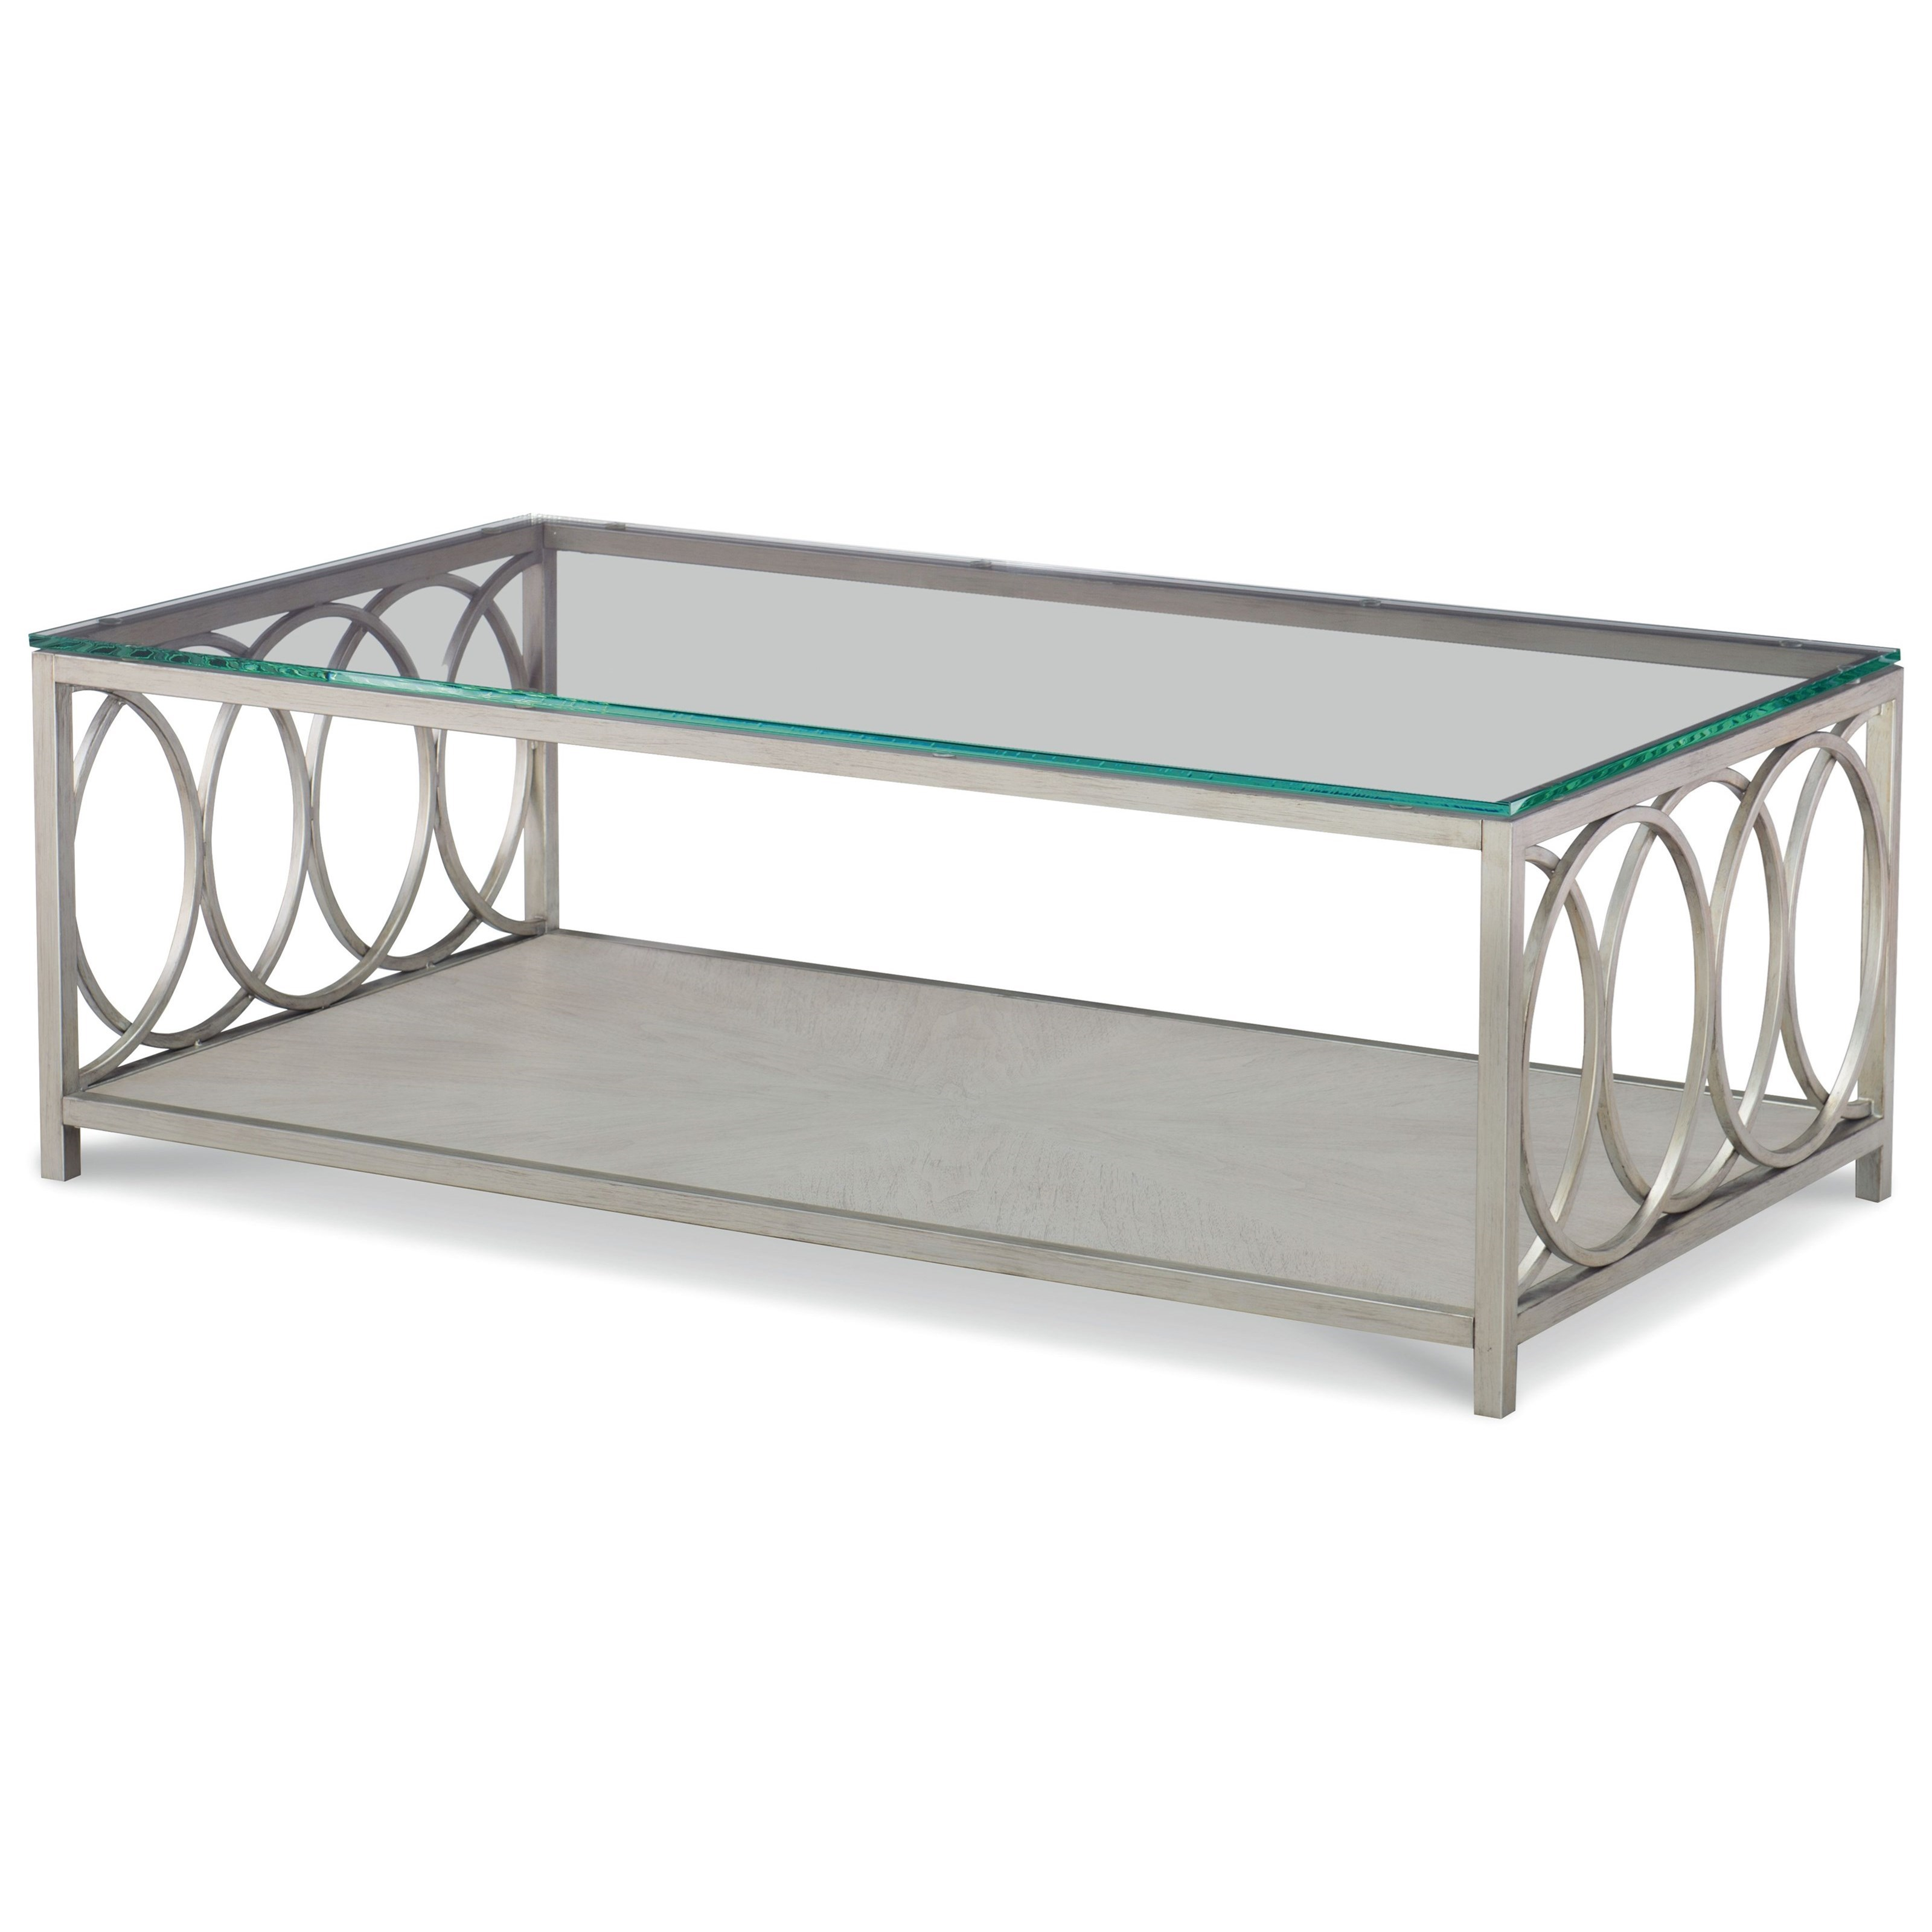 Cinema Glass Top Rectangle Cocktail Table  by Rachael Ray Home by Legacy Classic at Baer's Furniture